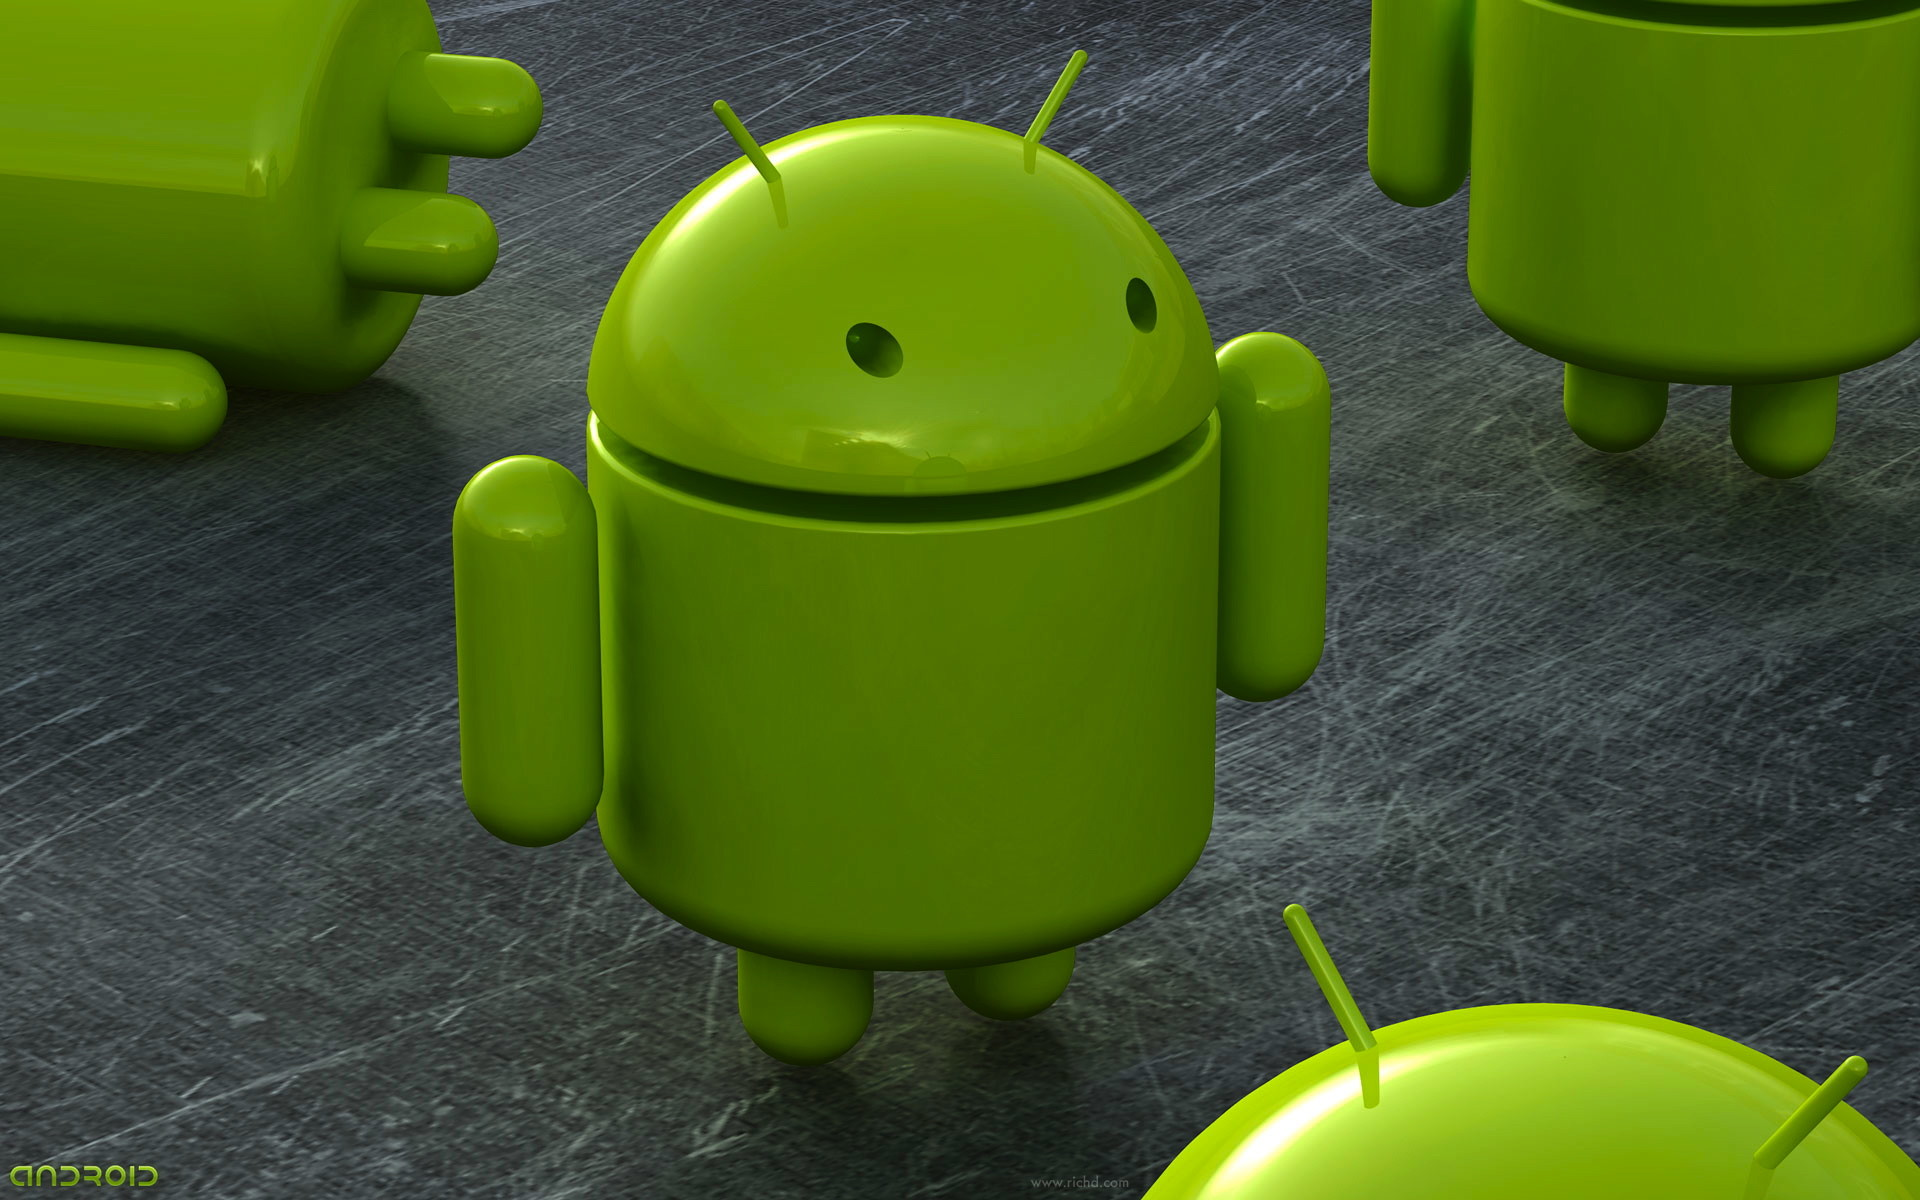 Wallpaper For Android Tablets: Wallpaper For Android Tablet (56+ Images